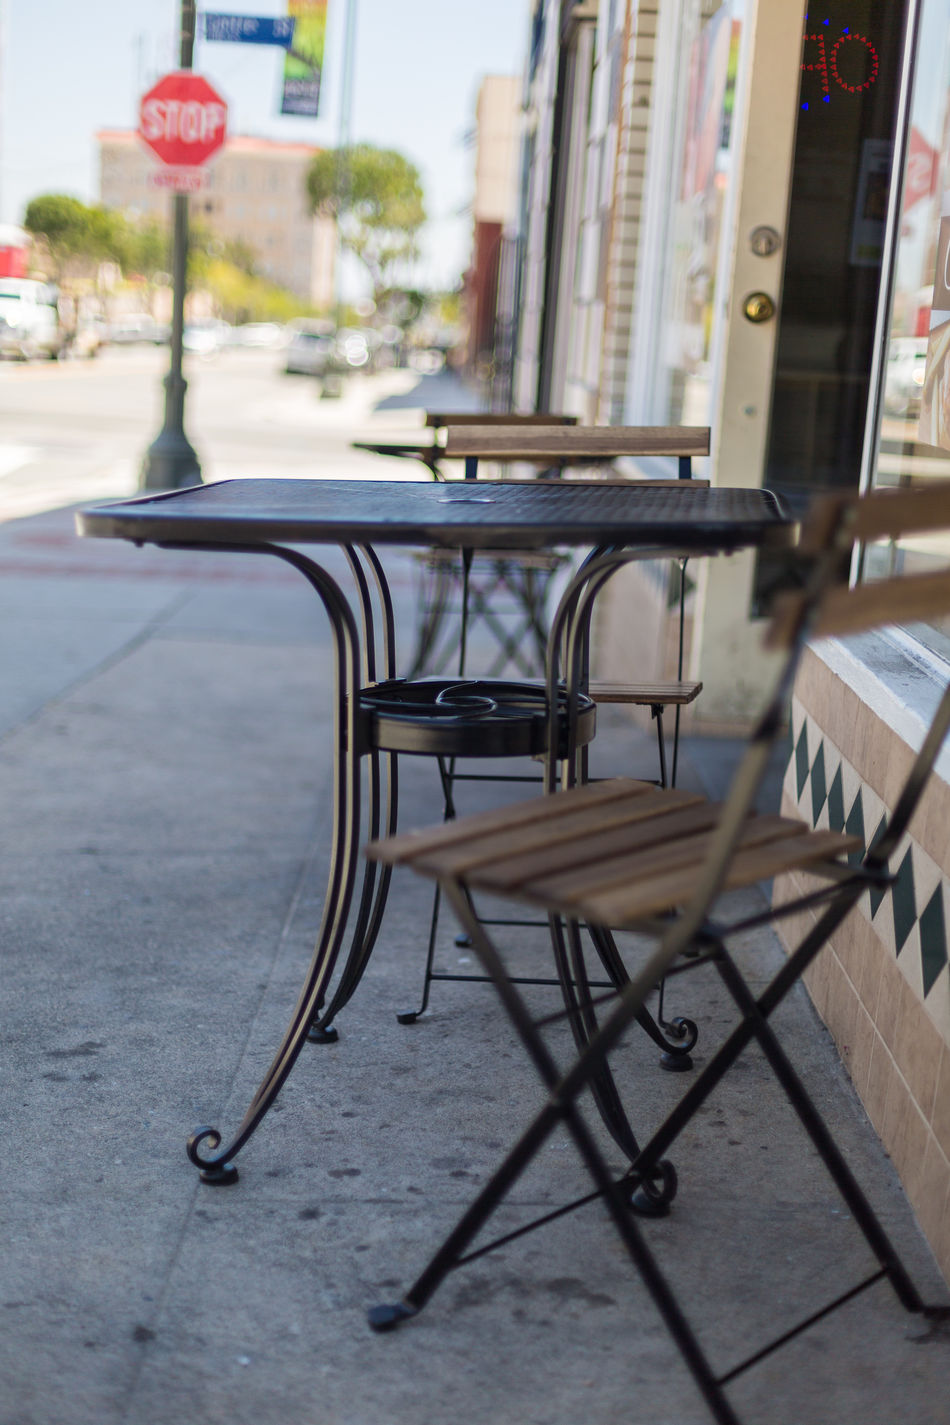 cafe tables and chairs Architecture Building Building Exterior Cafe Cafe Entrance Chairs City Close-up Day Focus On Foreground Metal Tables Morning No People Outdoors Patio Roads Shade Shaded Shallow Depth Of Field Street Tables Town Urban Windows